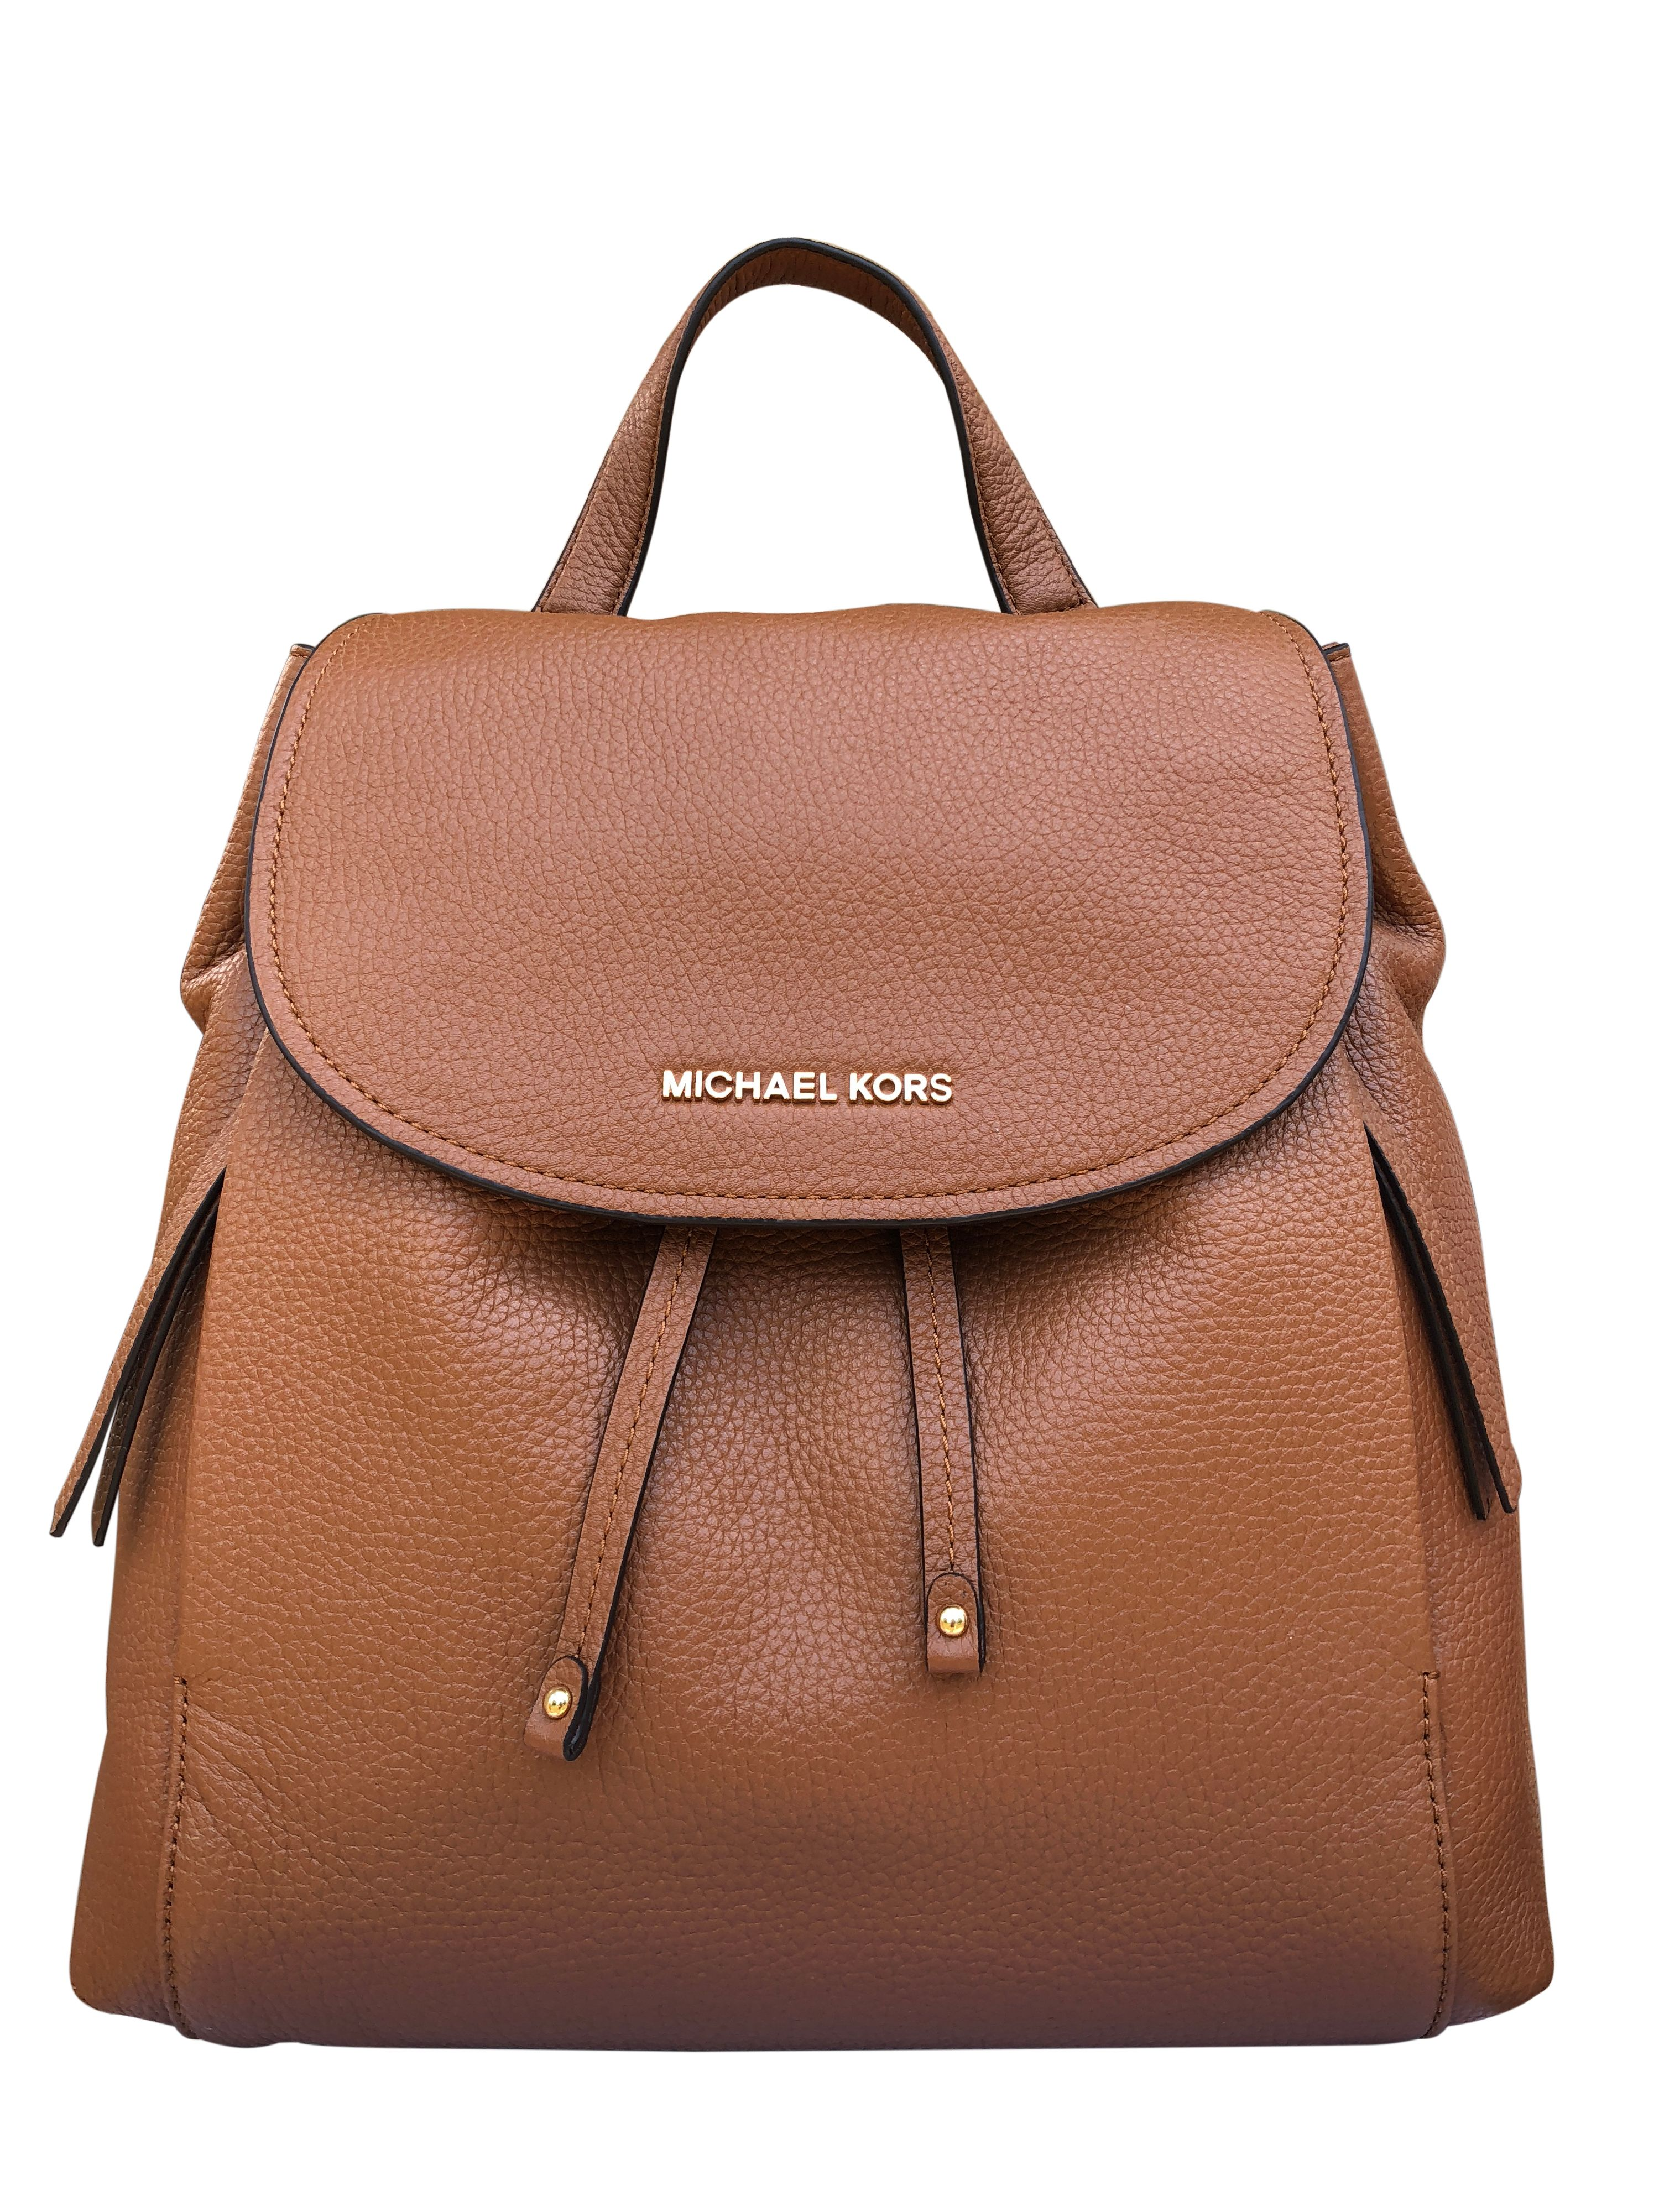 e4a44f4bd12e ... order michael kors riley large leather backpack luggage brown  drawstring flap bag walmart f2f8d 7c87e